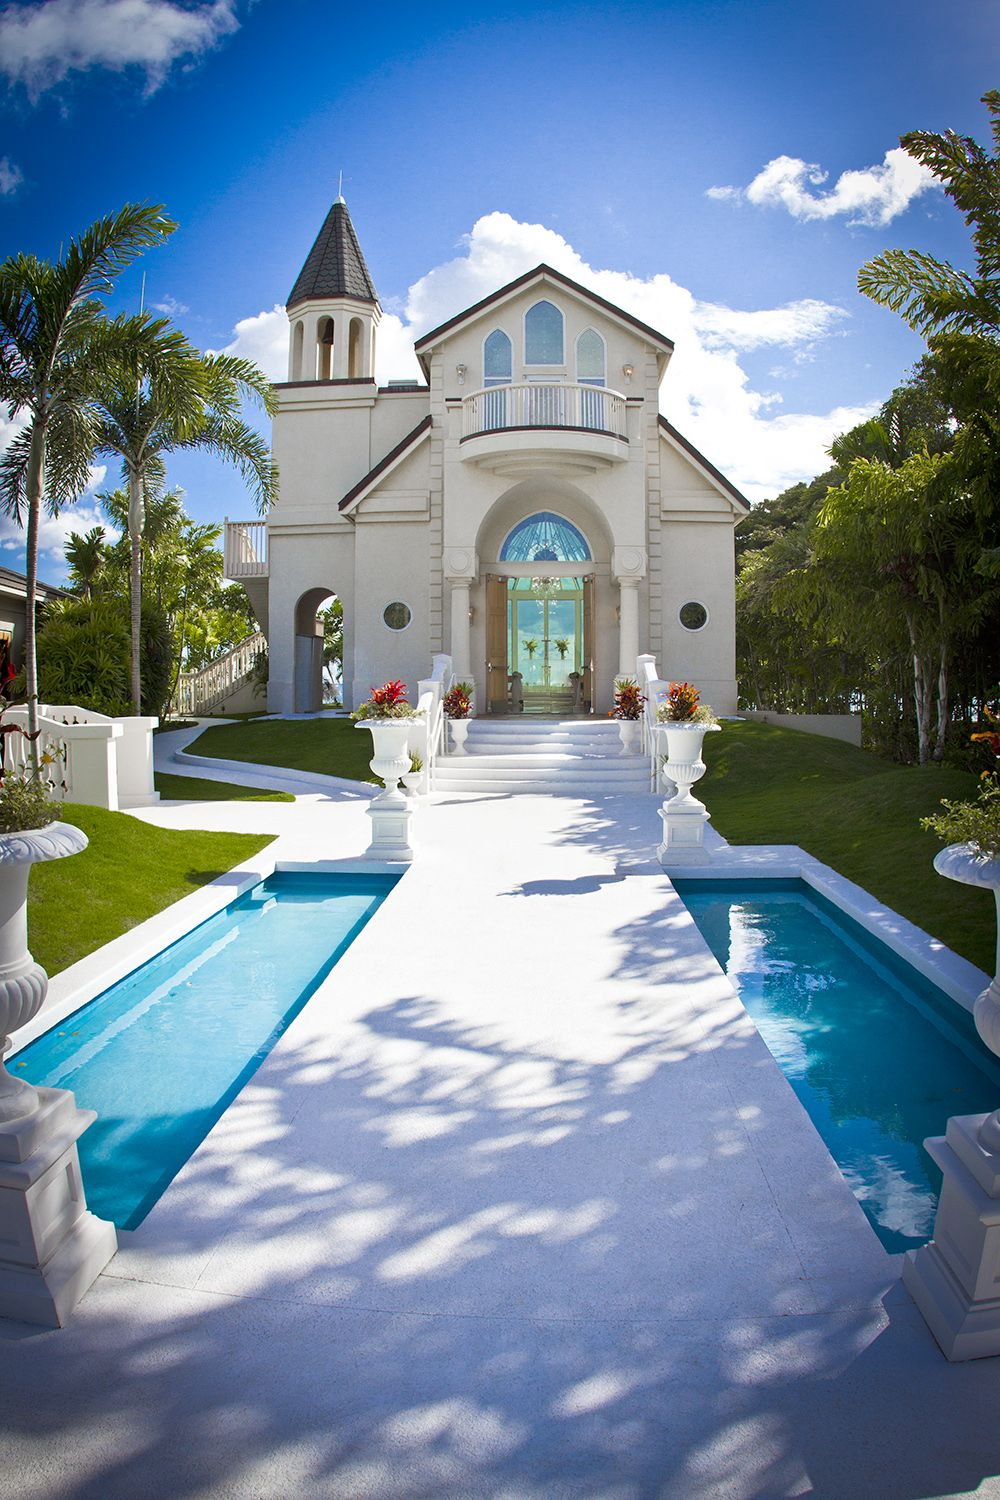 Hawaii Wedding Venues.A Beautiful Photo Of Our Paradise Cove Hawaii Wedding Chapel